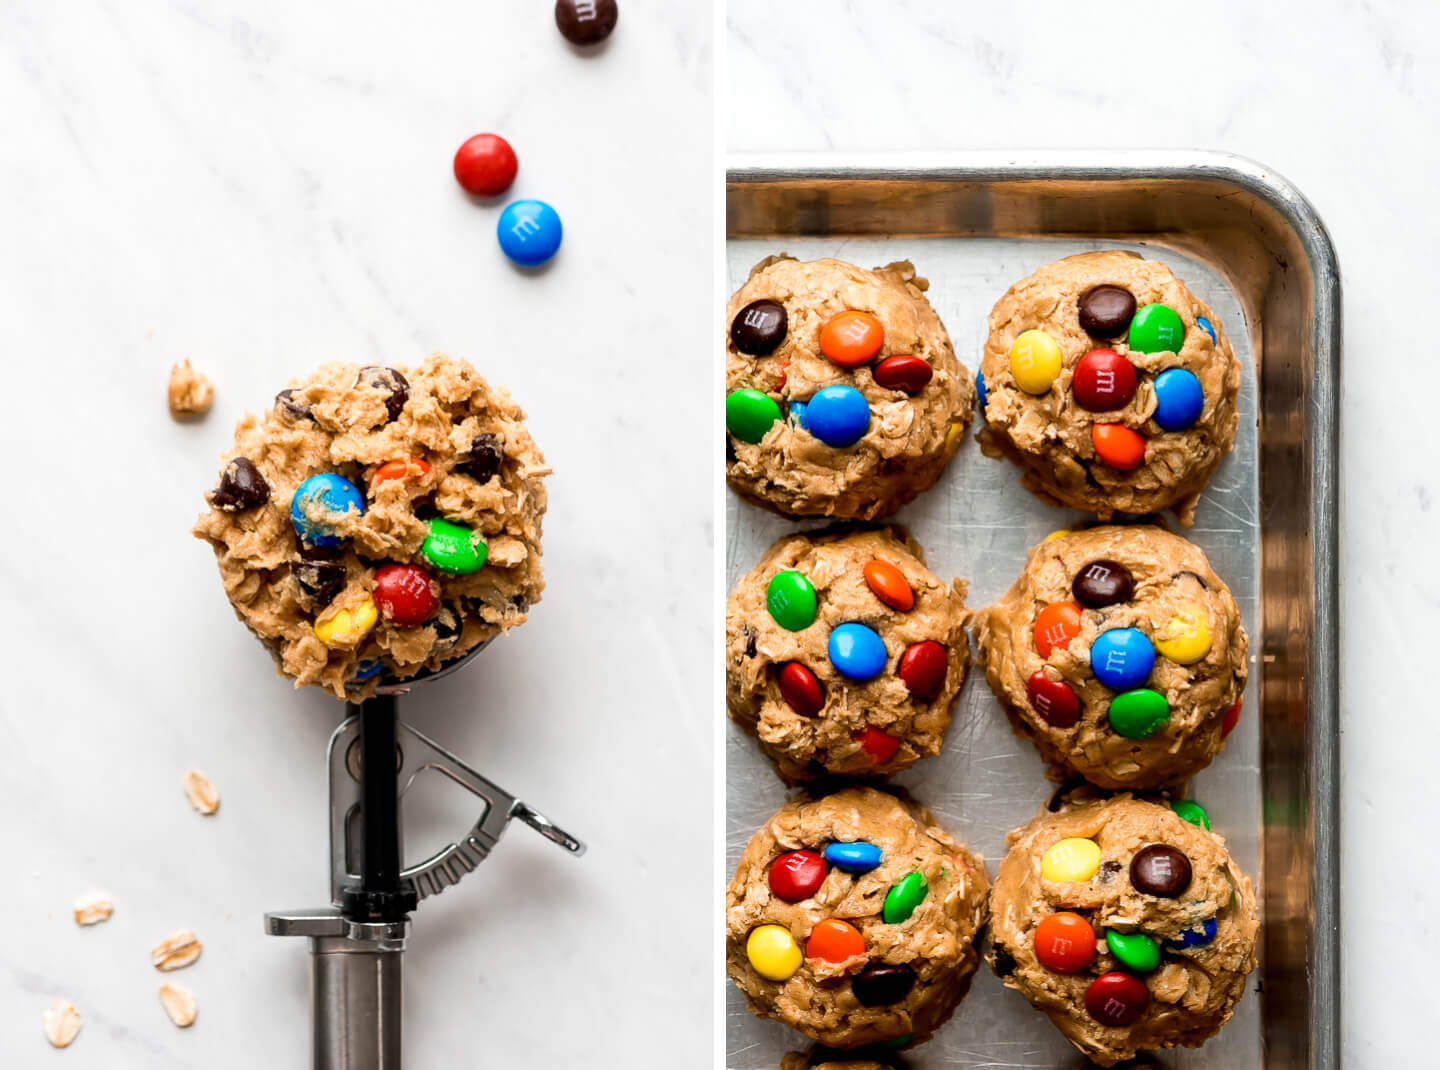 Peanut butter cookie dough with chocolate chips and M&M's in a trigger scoop and in balls on a baking sheet.